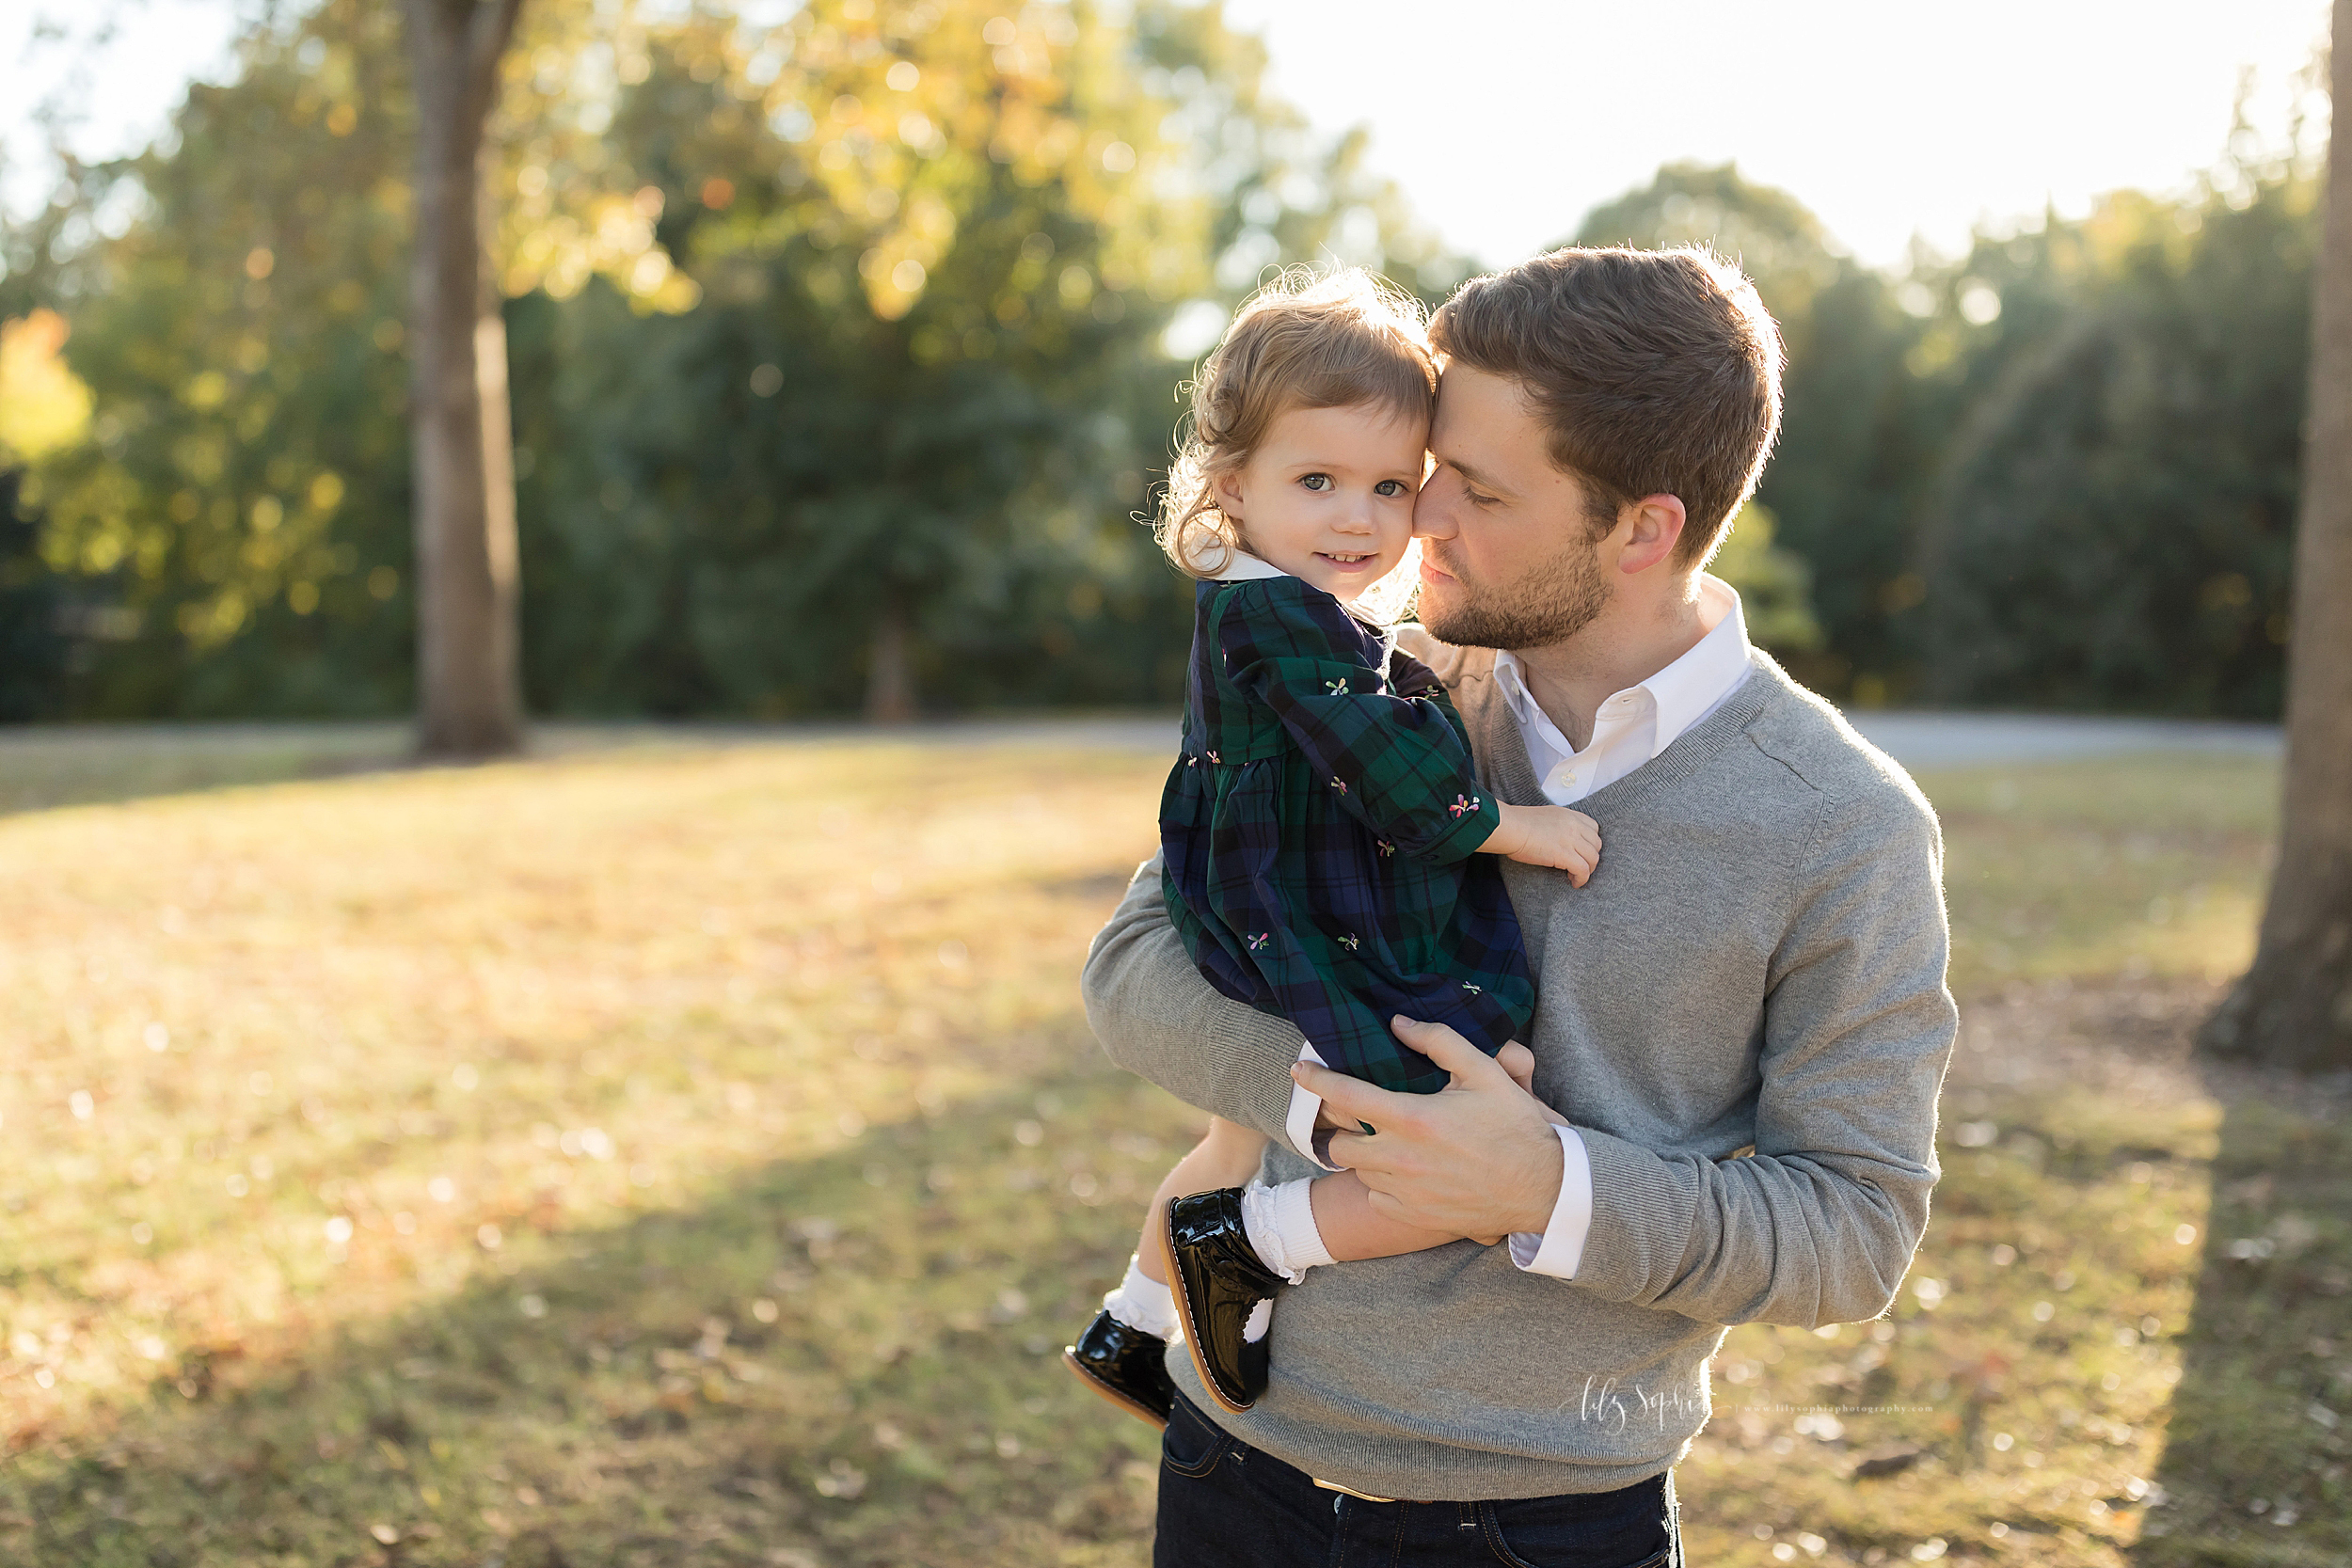 atlanta-buckhead-brookhaven-decatur-lily-sophia-photography-photographer-portraits-grant-park-intown-outdoor-family-sunset-session-toddler-baby-girl_0005.jpg